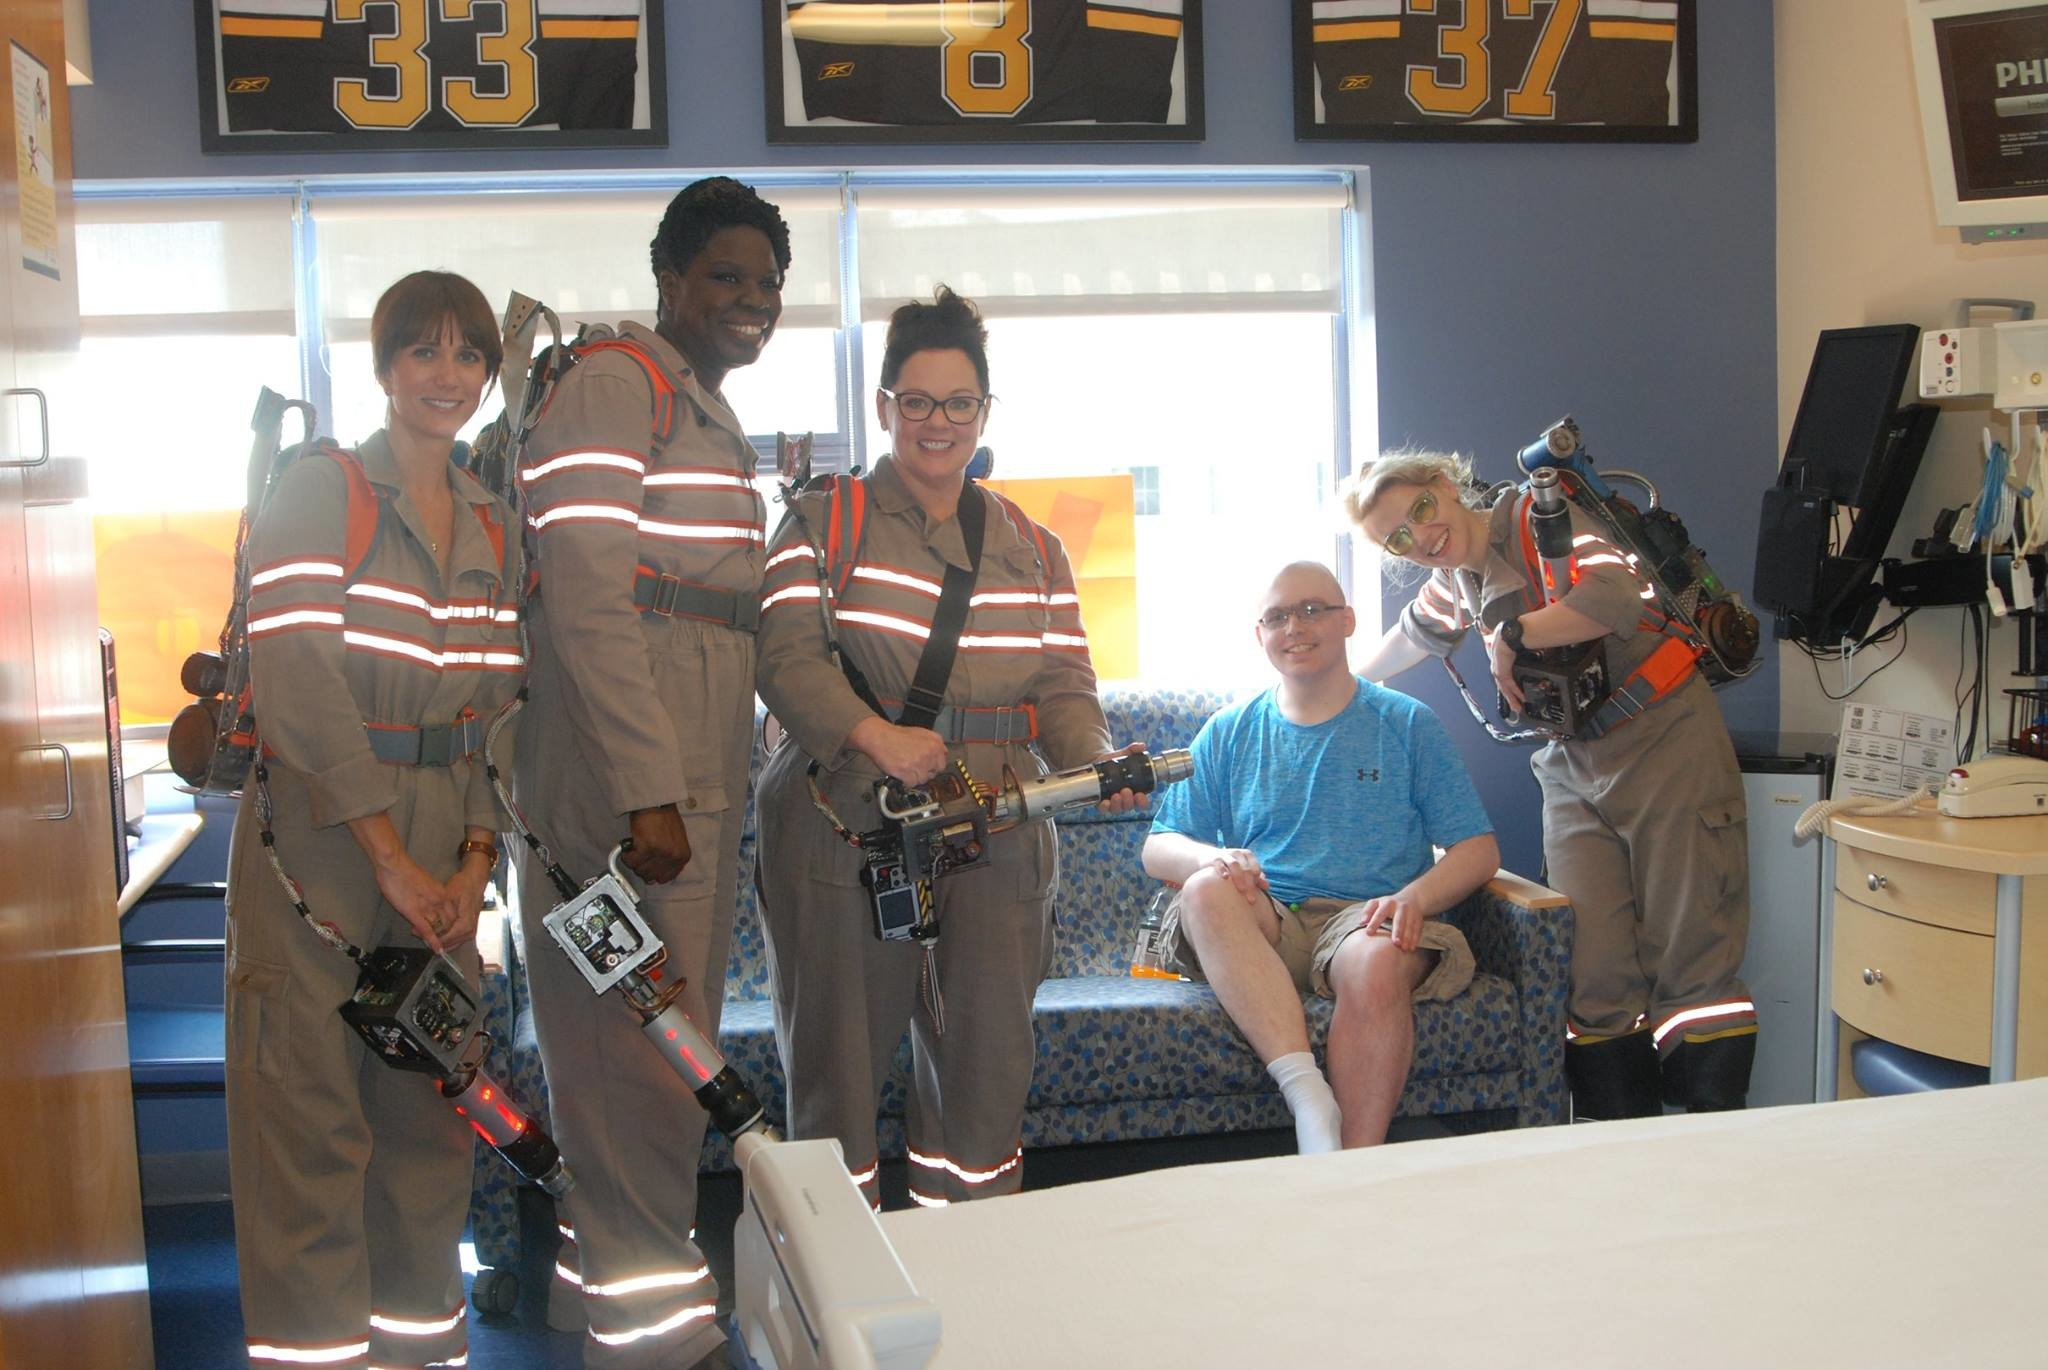 2048x1370 Photos: The new Ghostbusters turned up at a hospital, Slimer strangely  absent